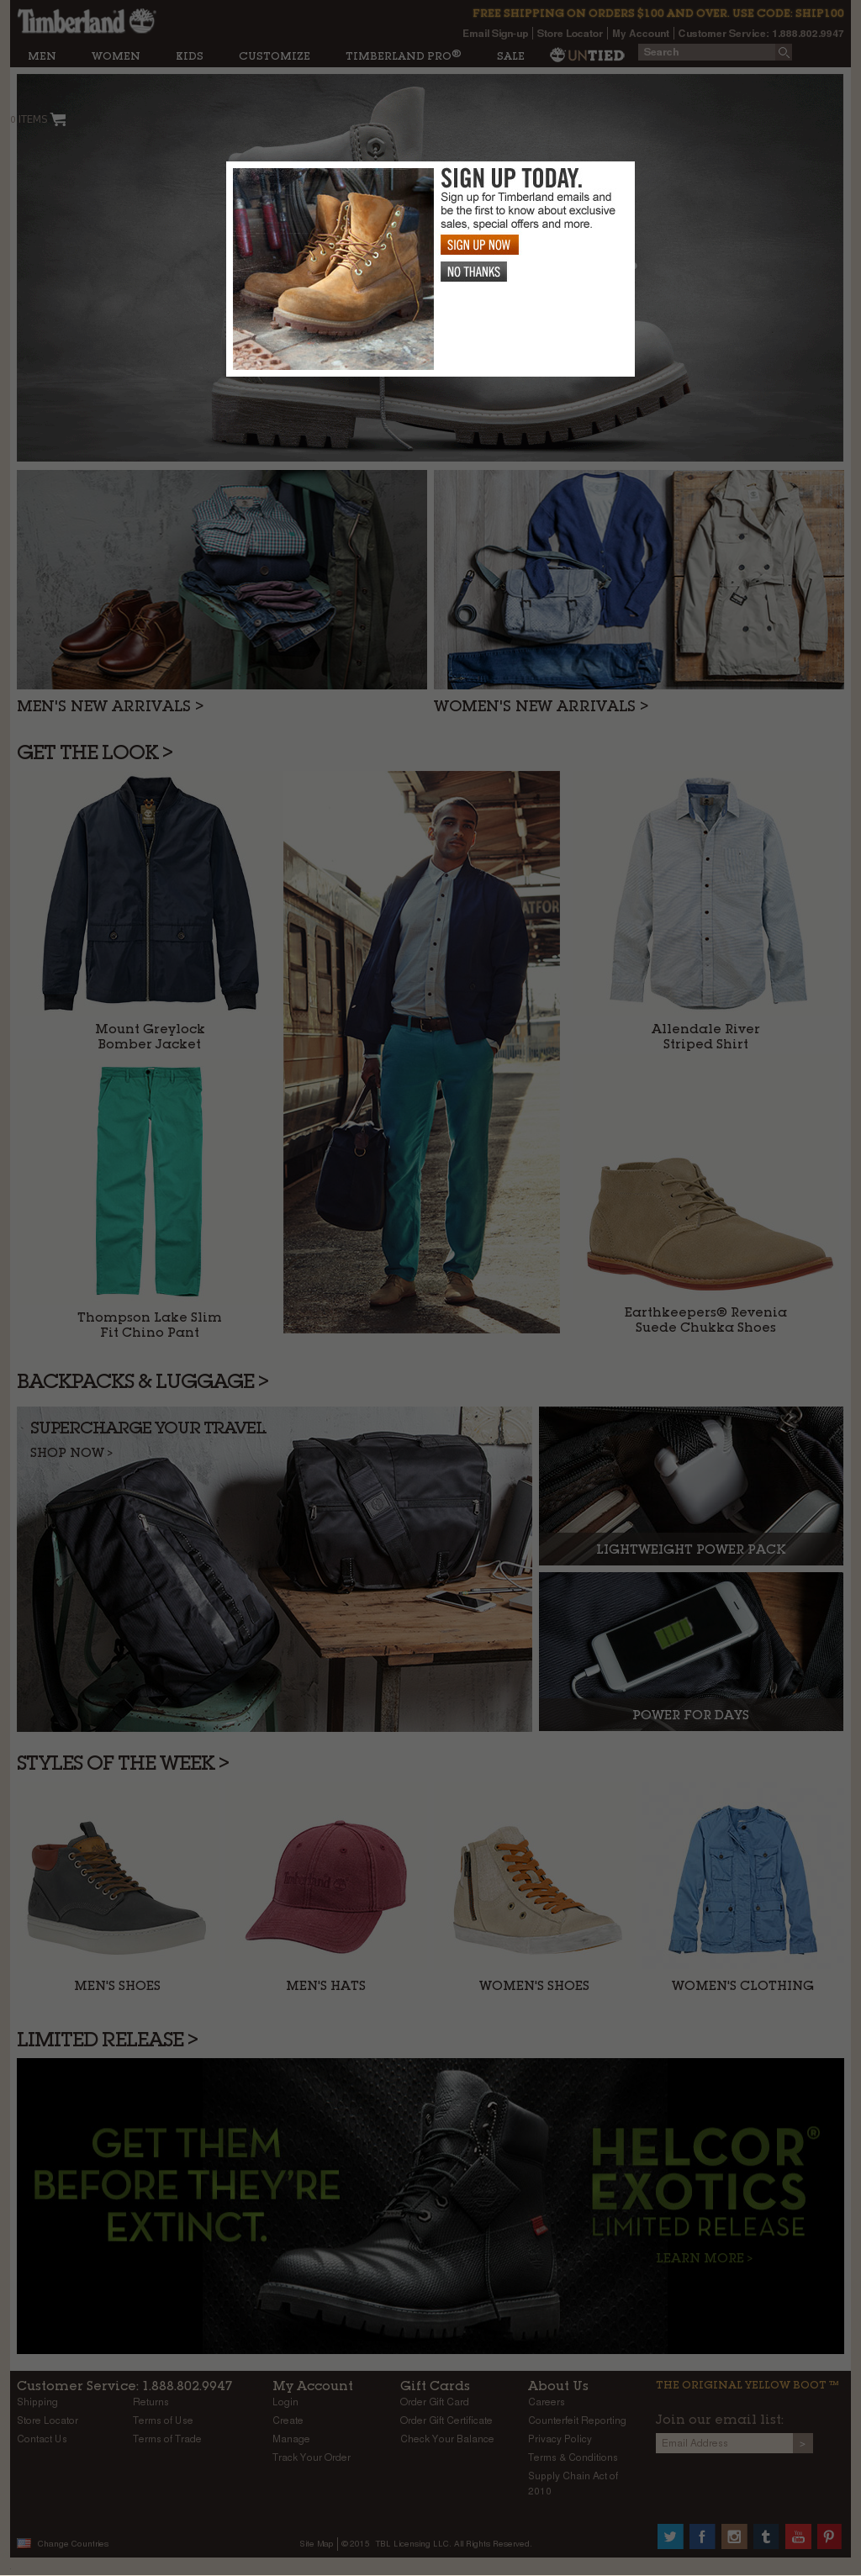 Timberland US rugged boots, boat shoes, outerwear and clothing